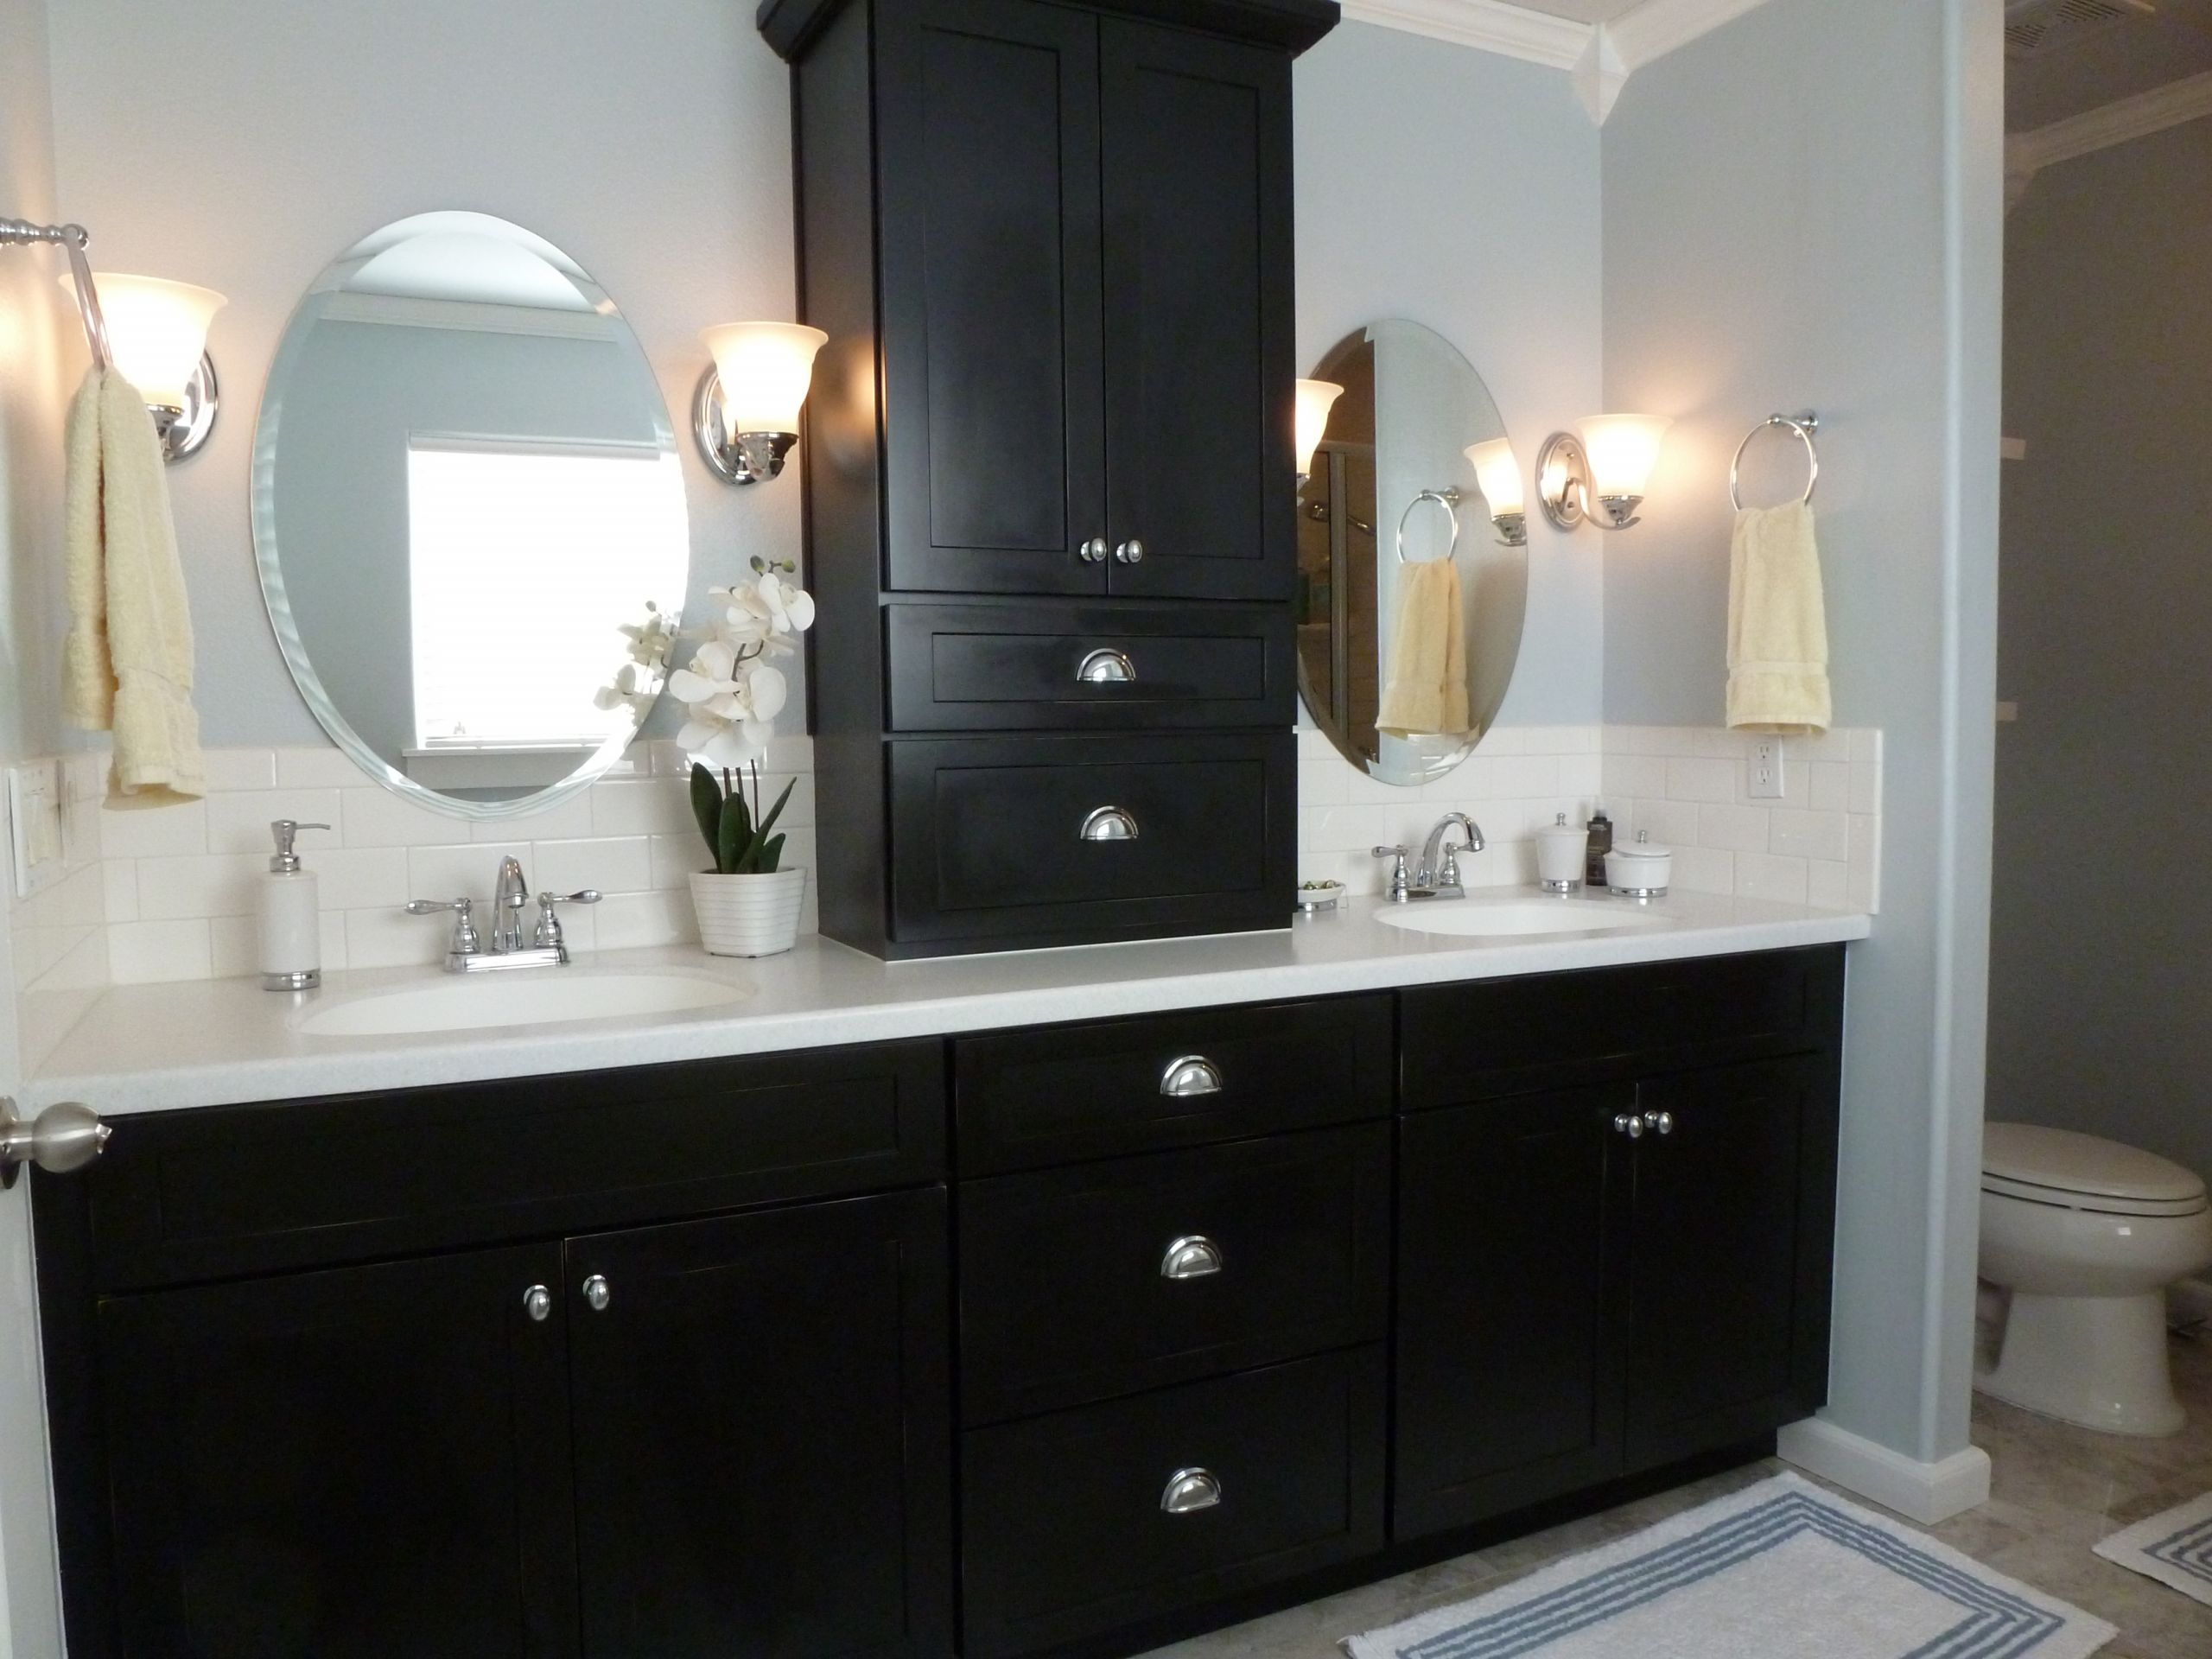 Black Bathroom Cabinet  How to design a luxury bathroom with black cabinets